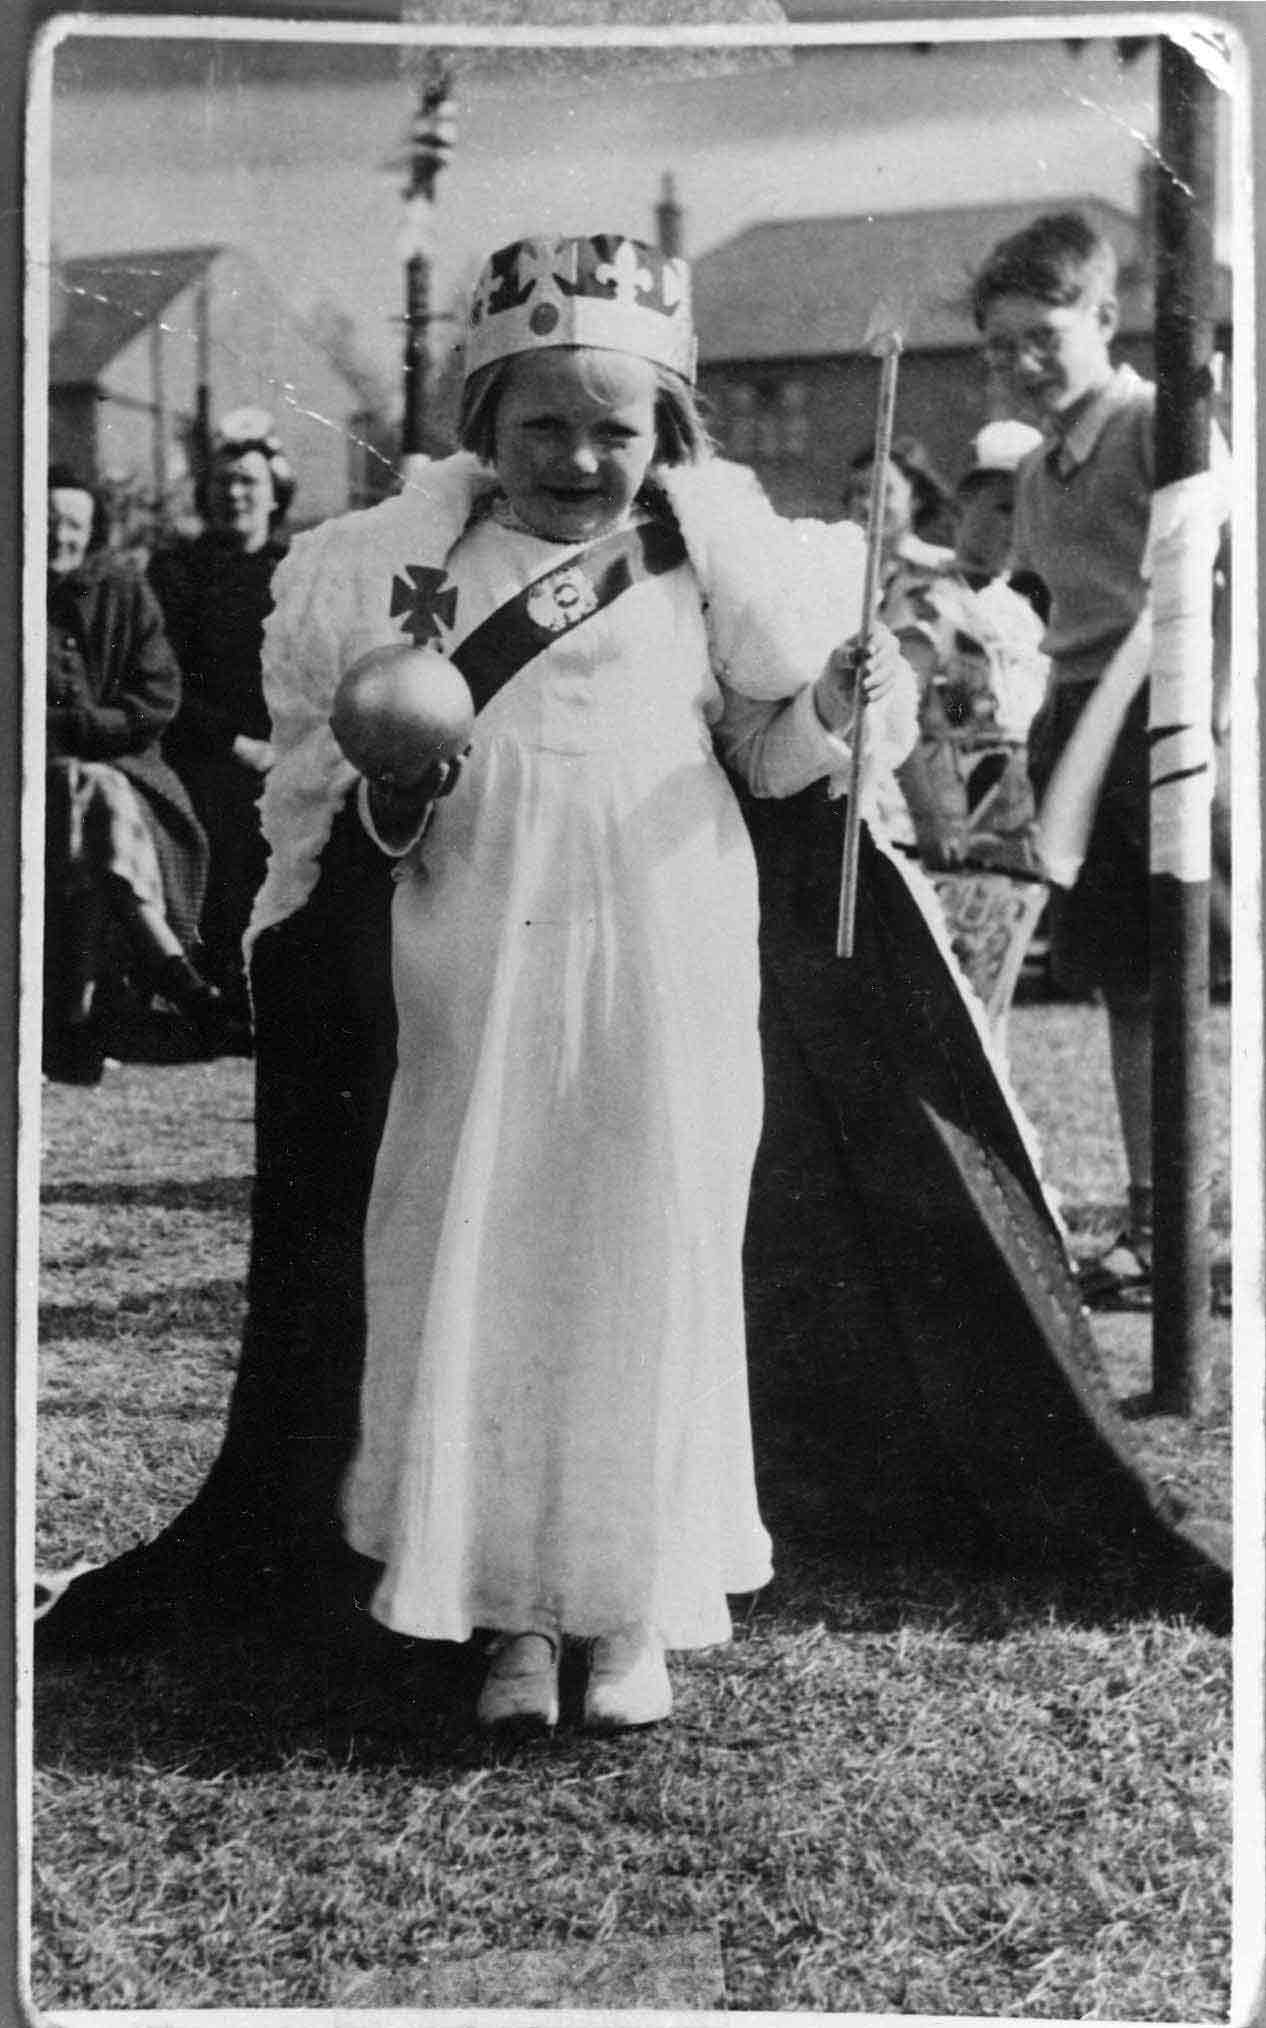 Young Girl On Gala Day In Coronation Year 1953